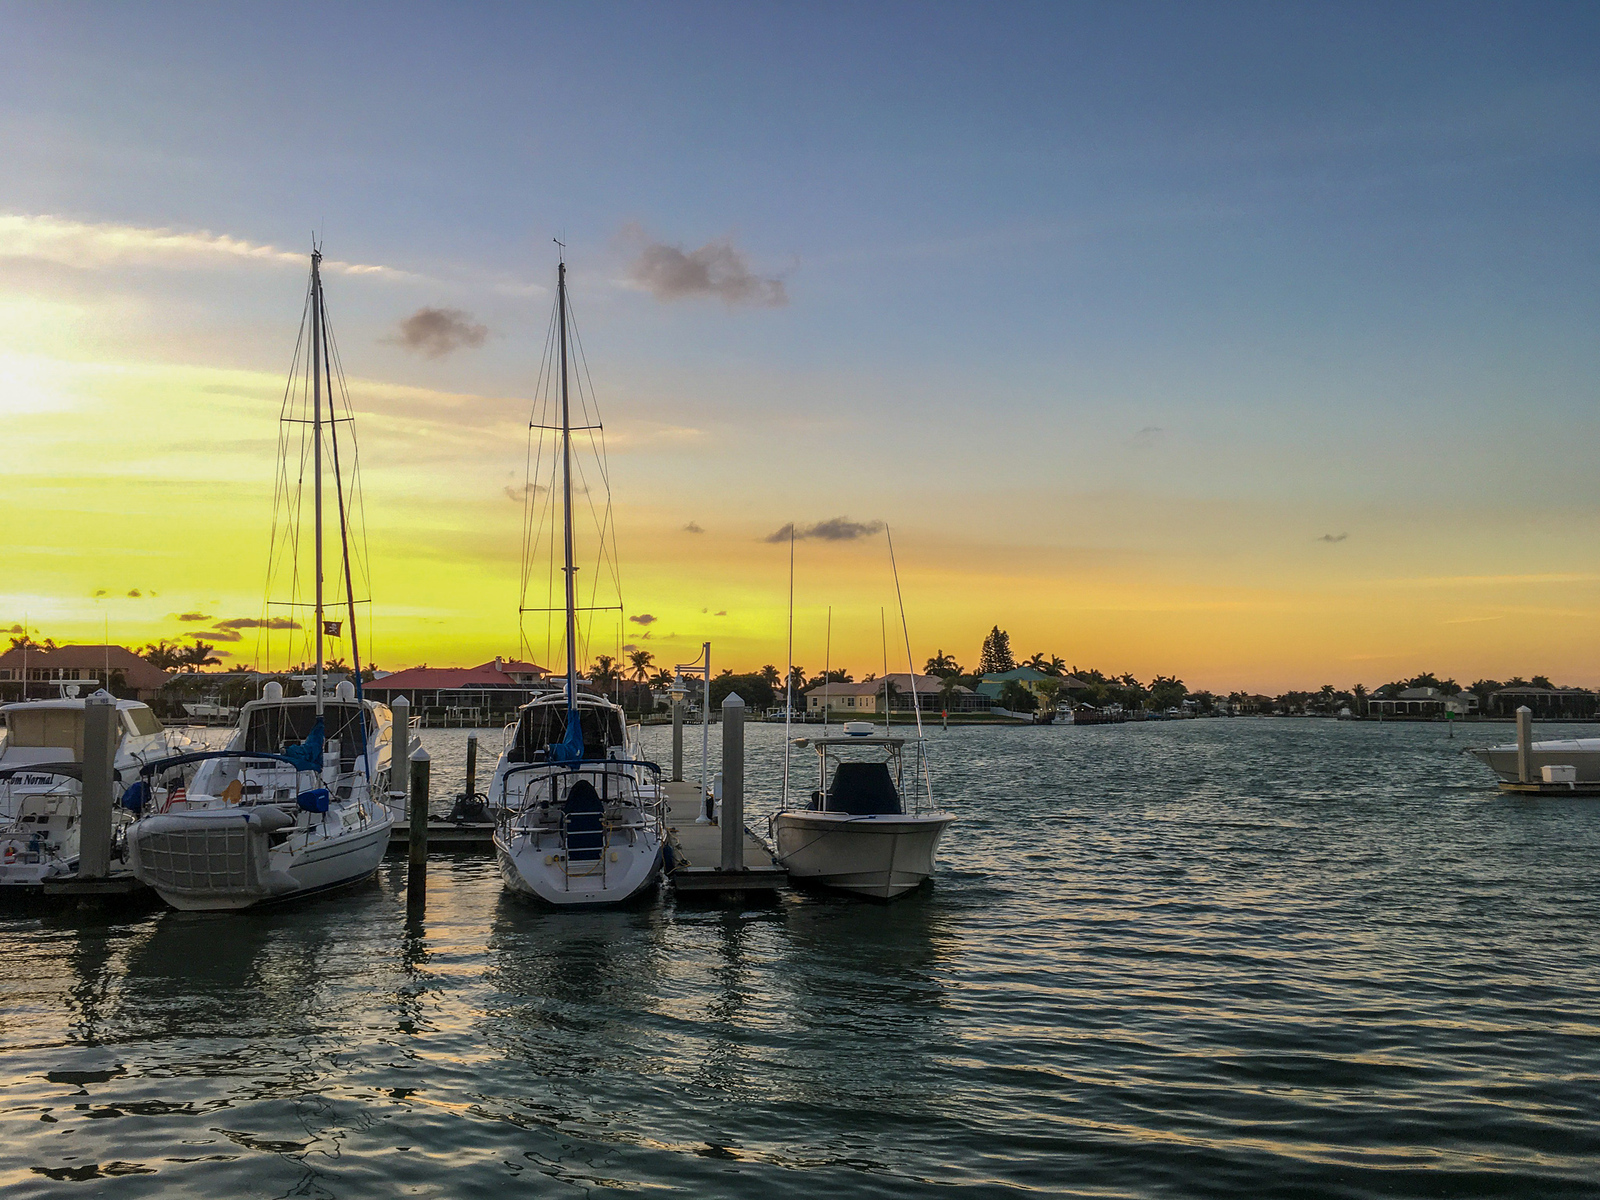 some marco island travel guides suggest renting a boat